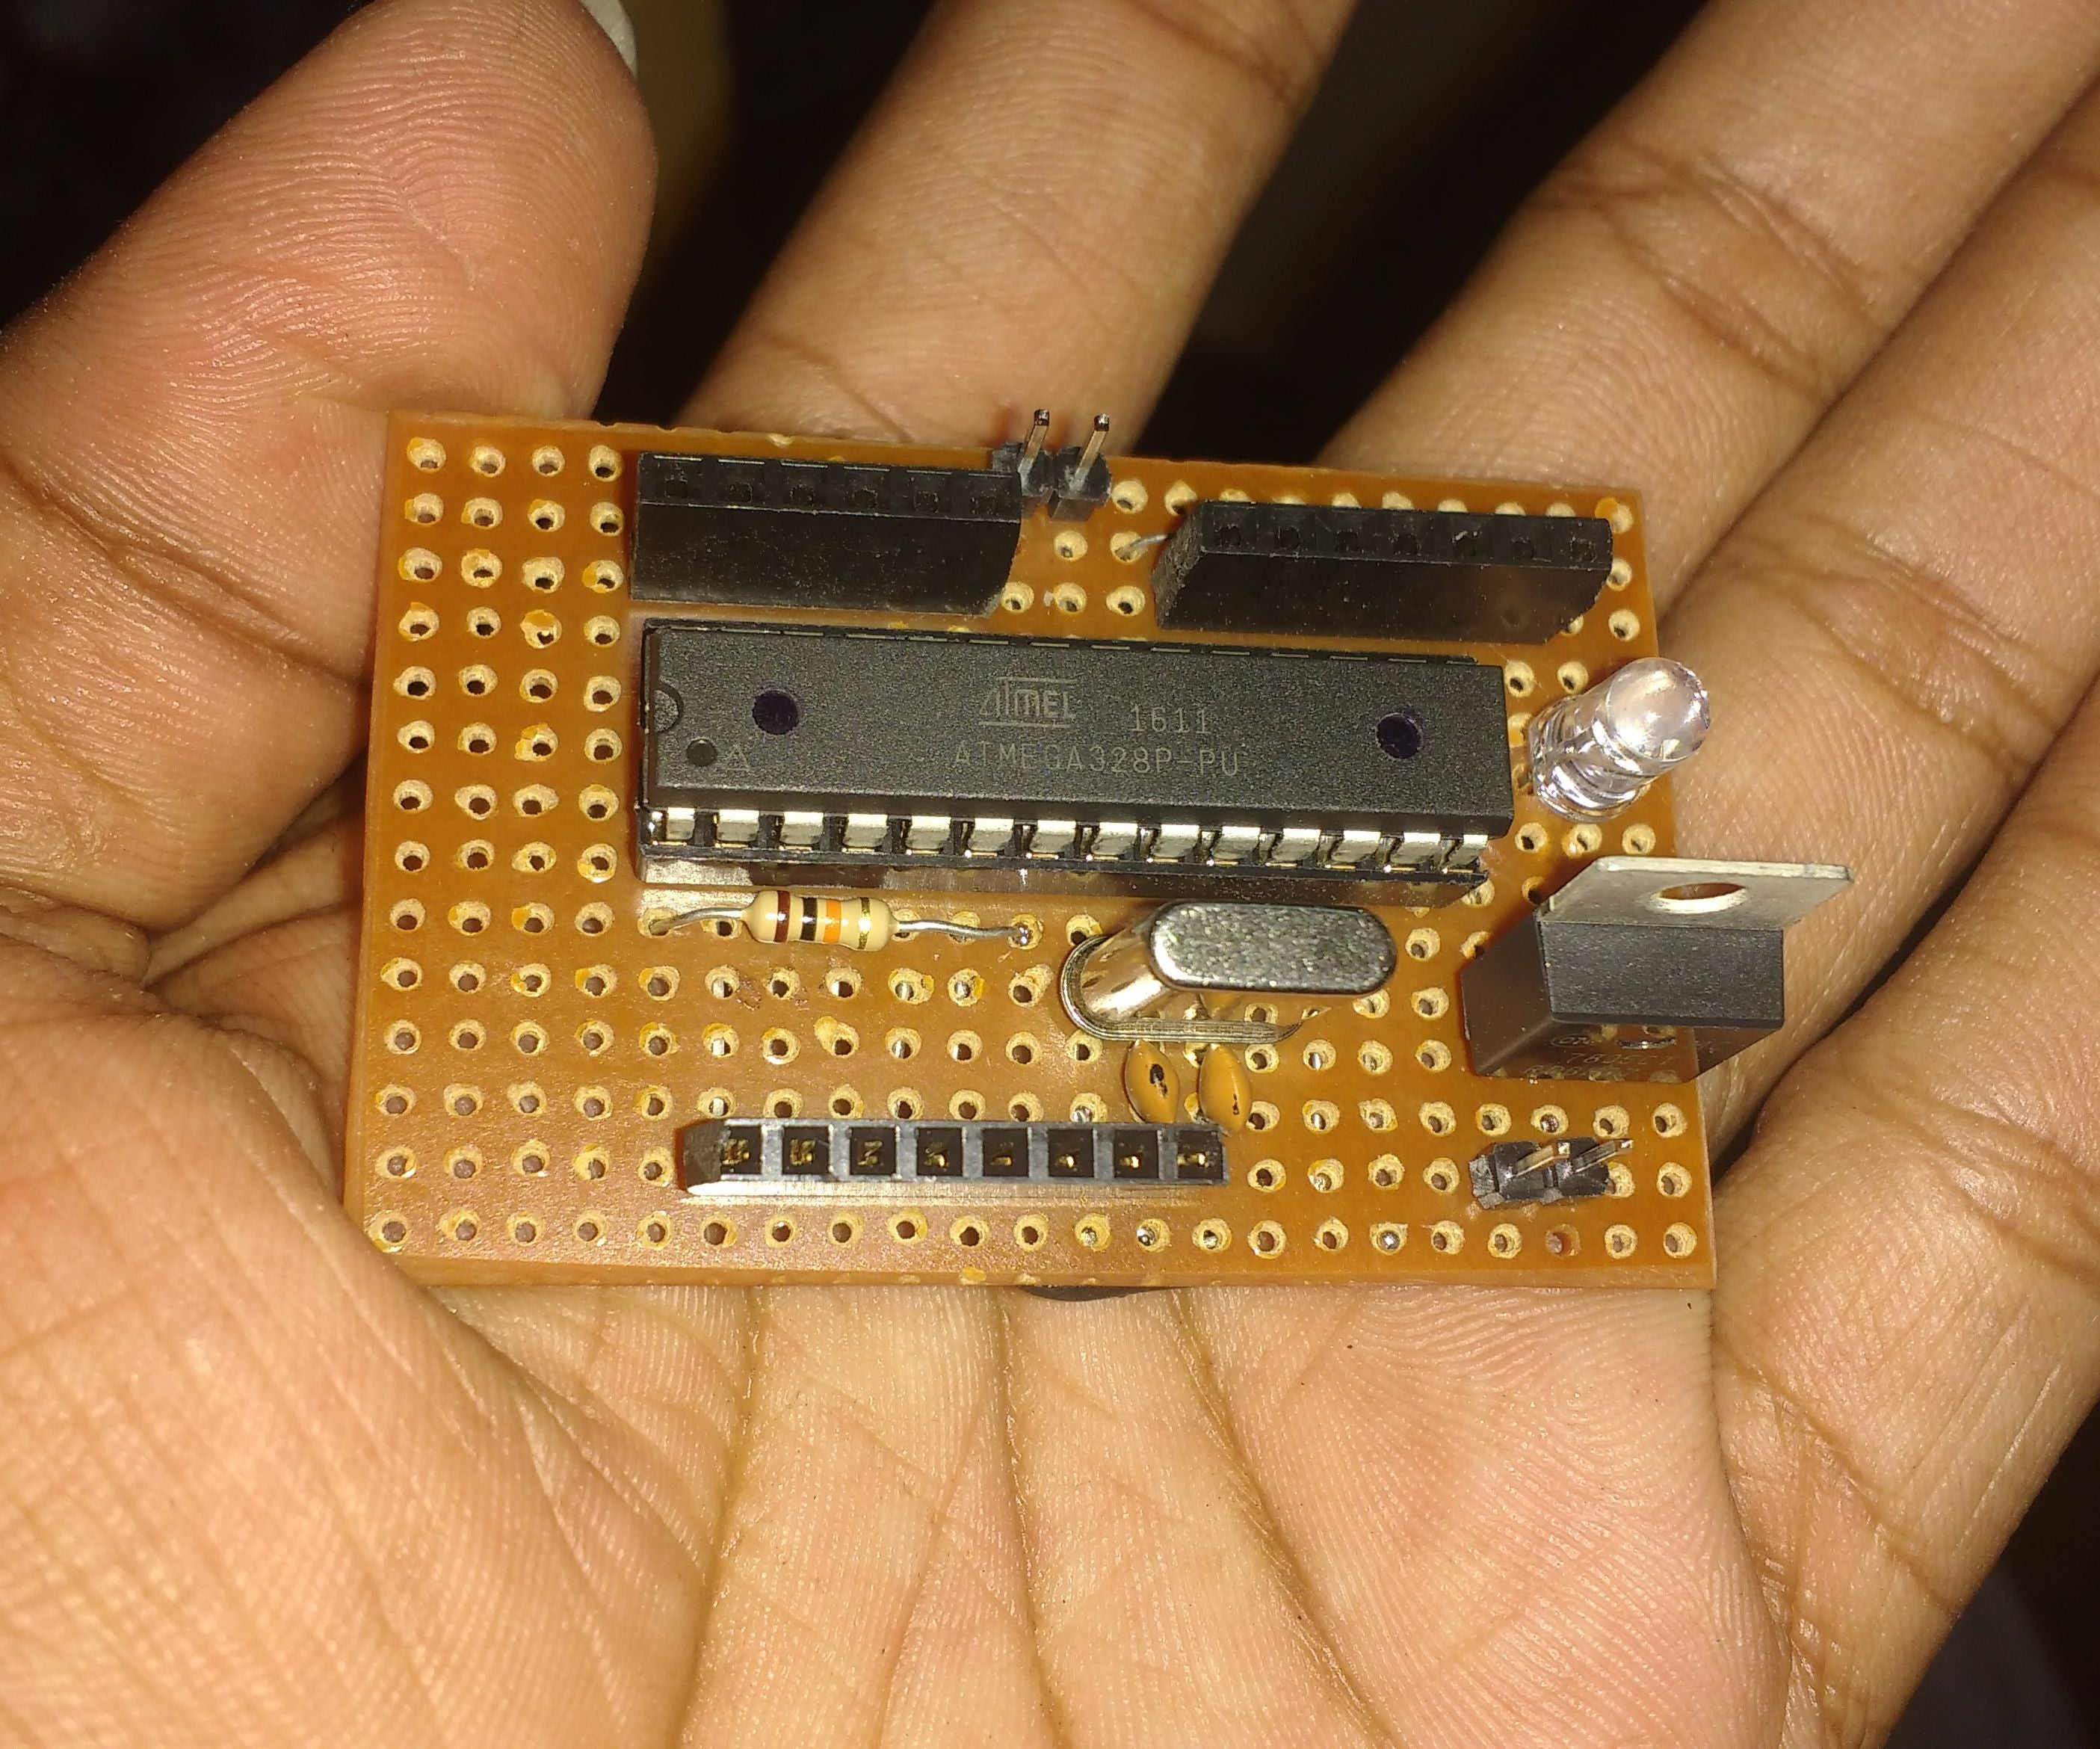 Make Your Own Arduino